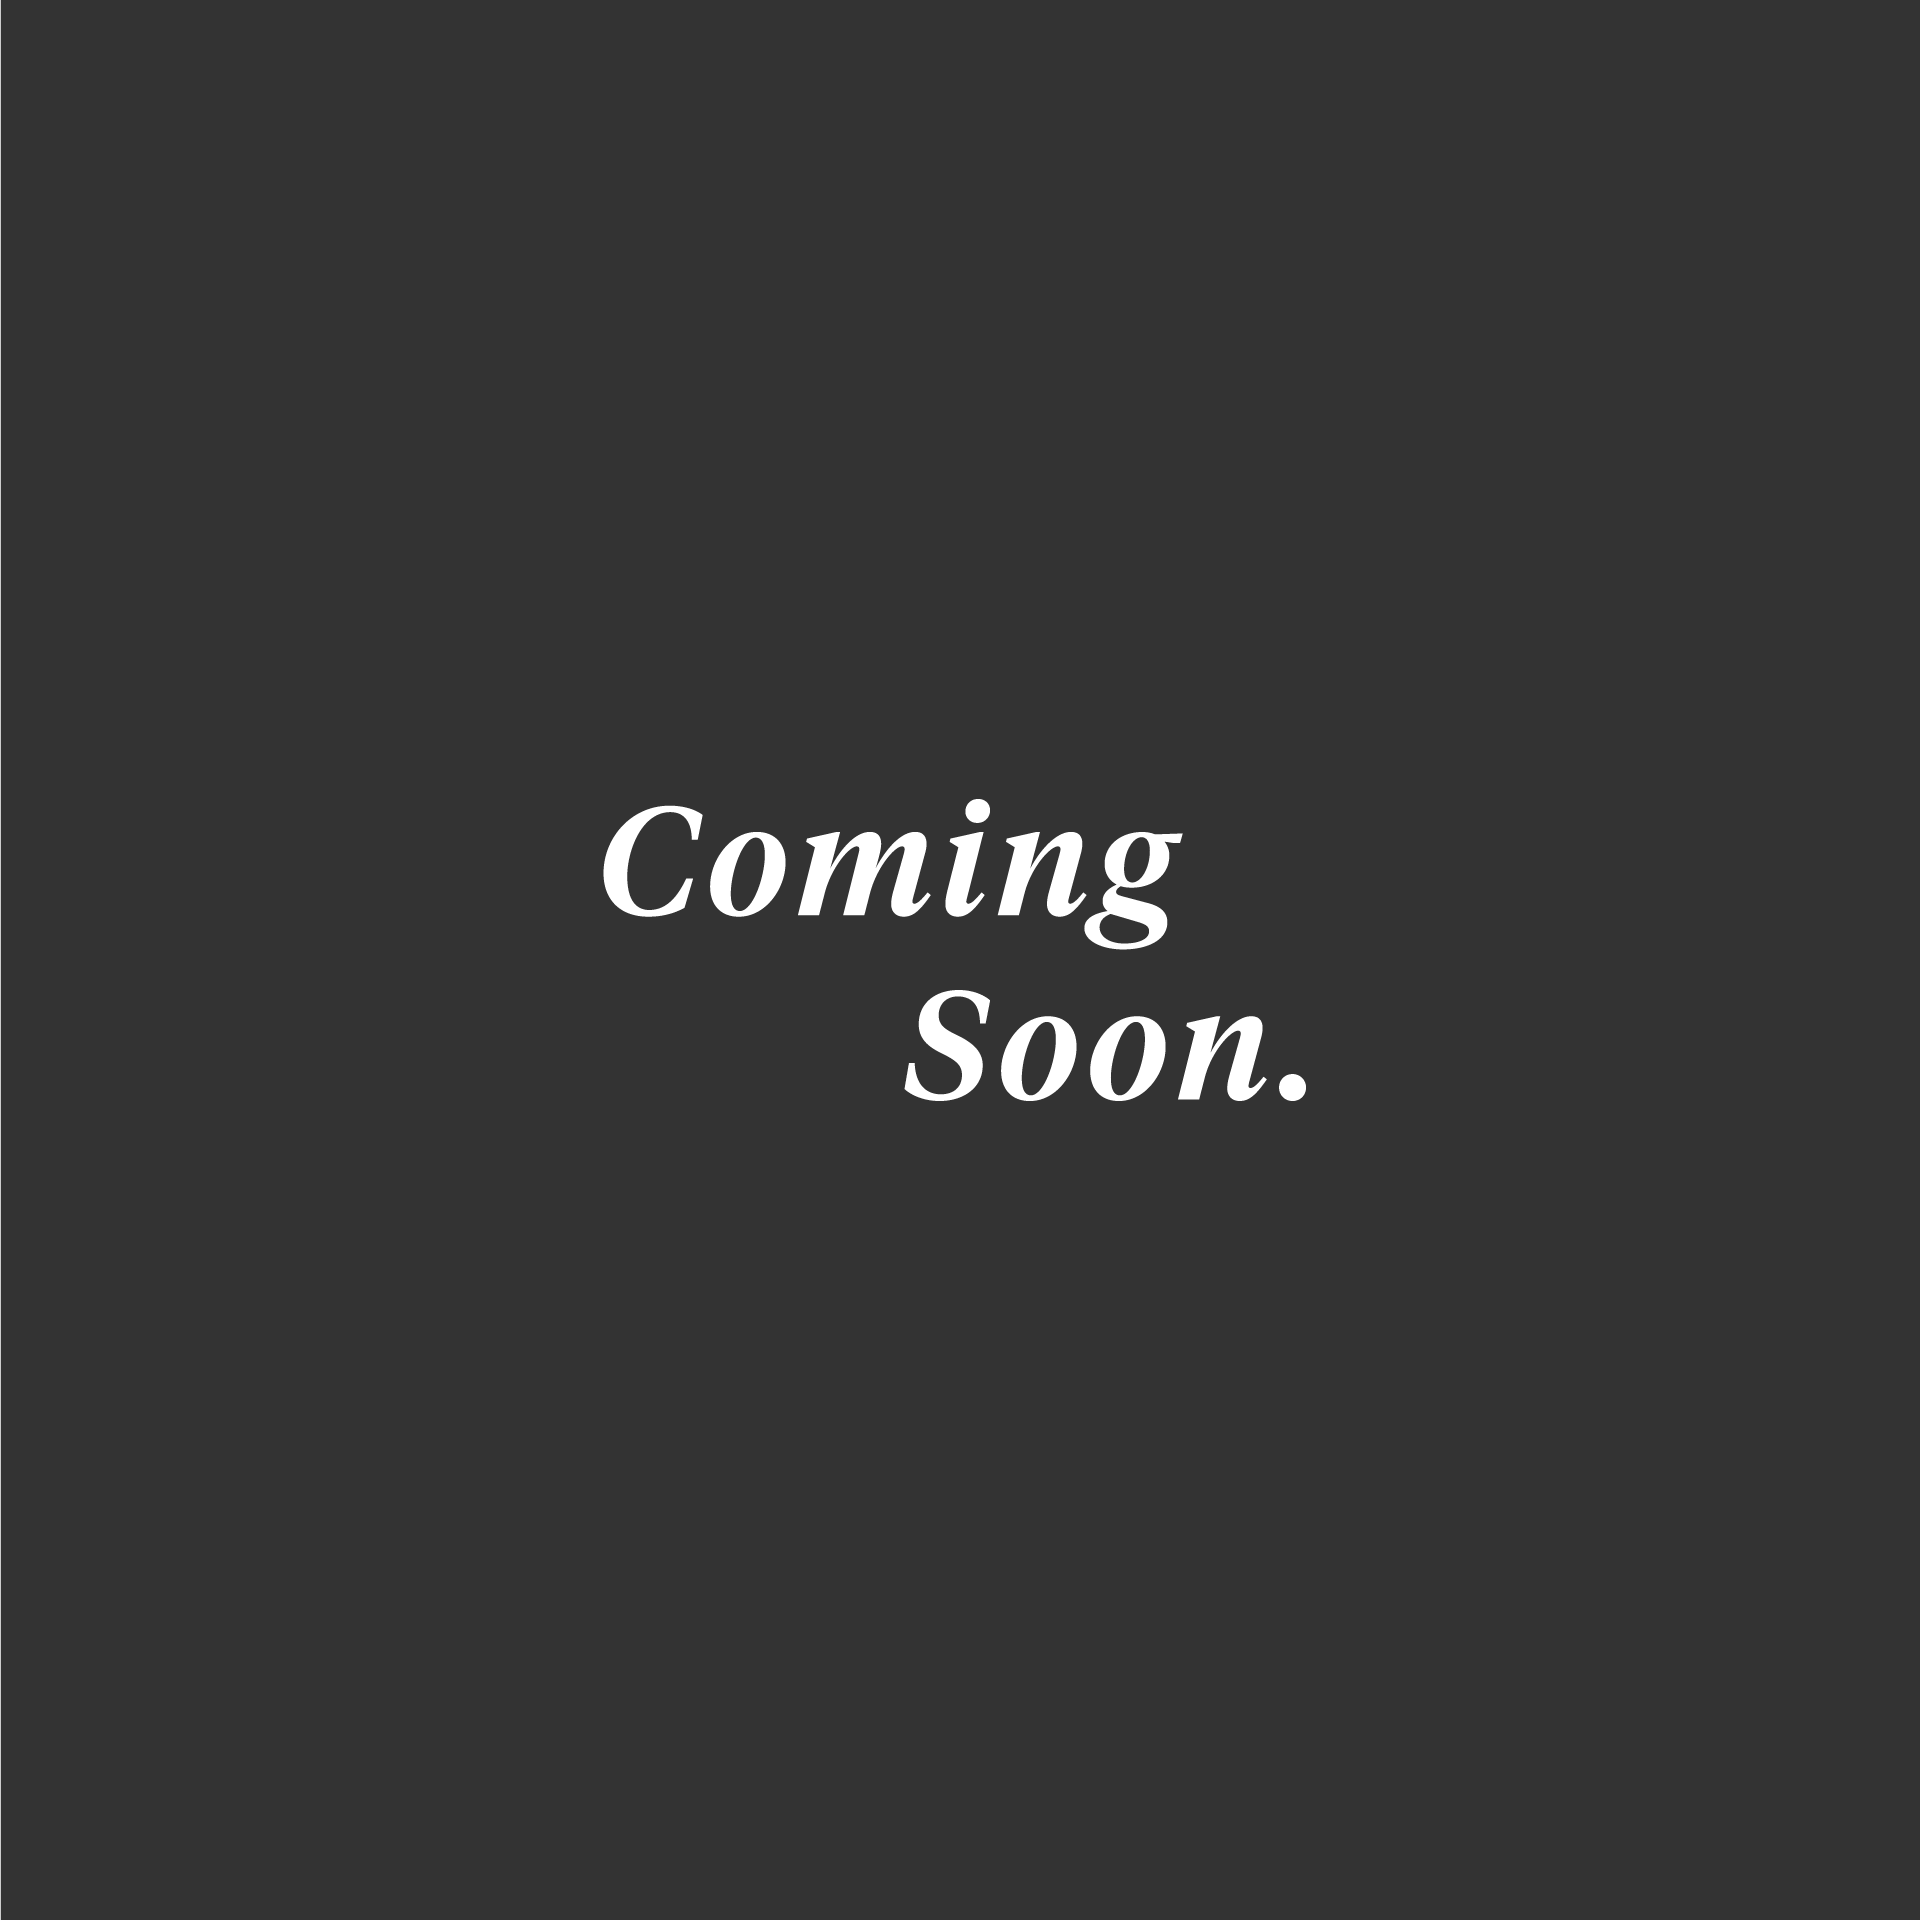 project-coming-soon-graphic-1920.png